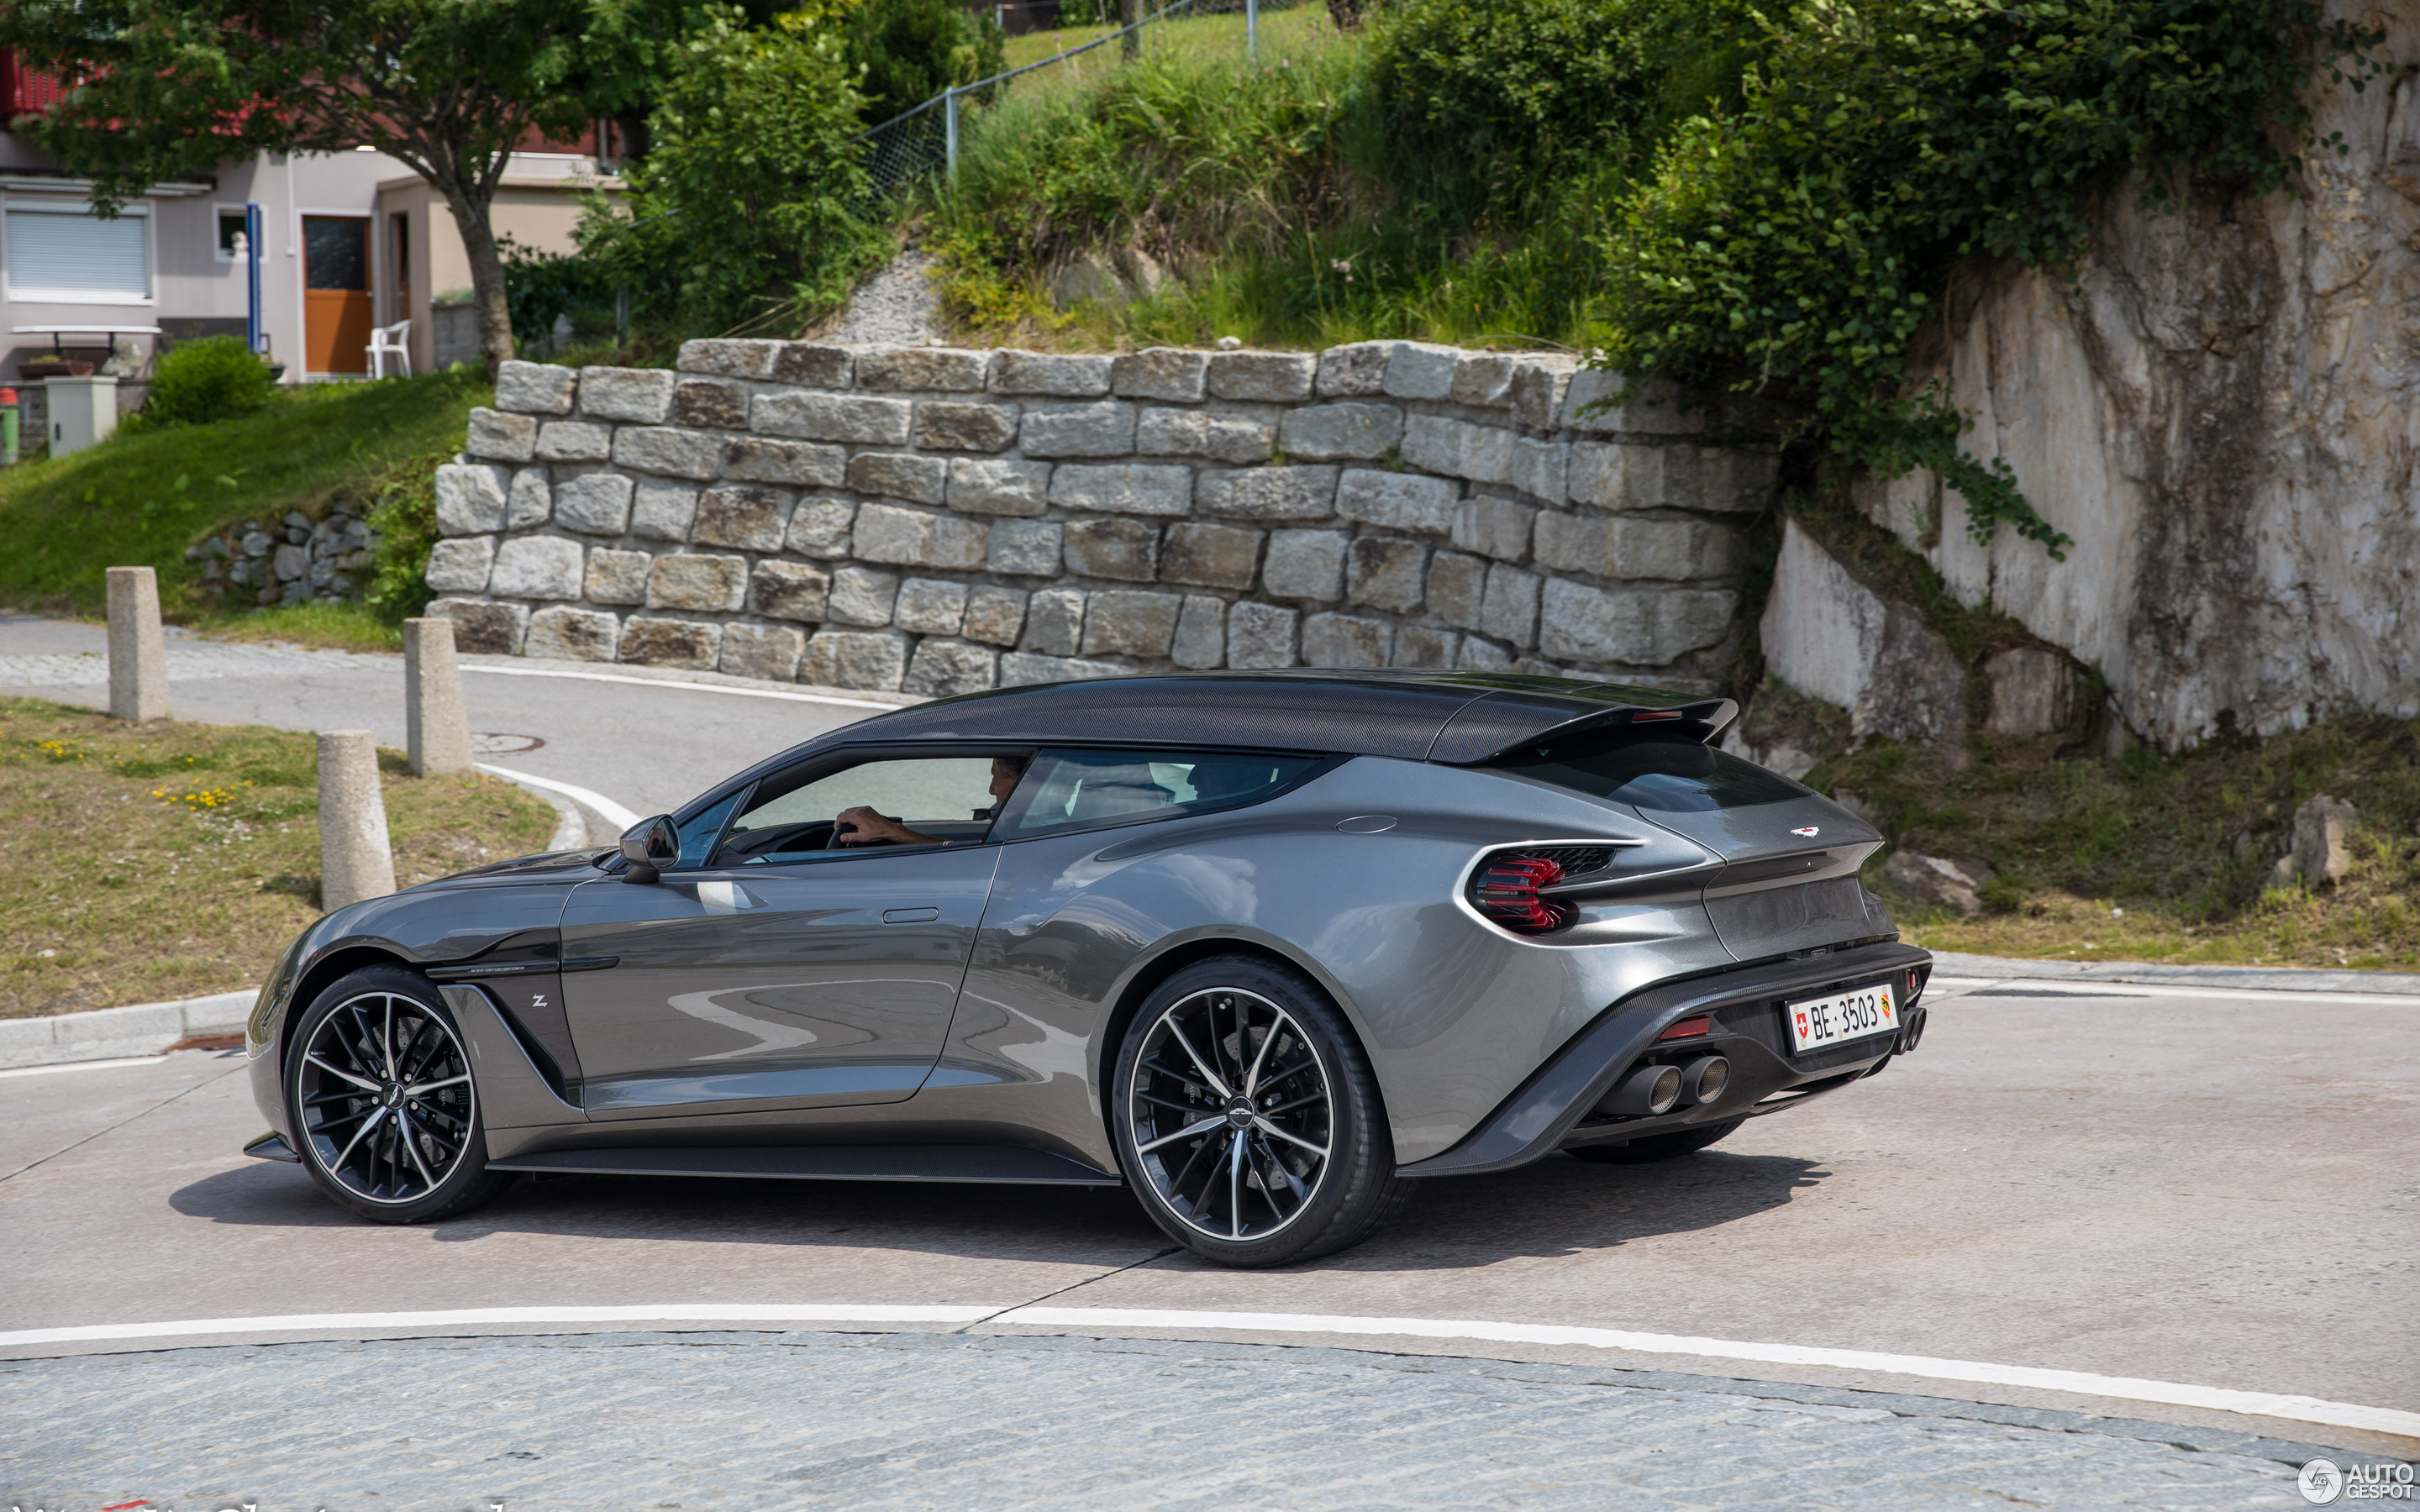 Aston Martin Vanquish Zagato Shooting Brake 6 August 2019 Autogespot